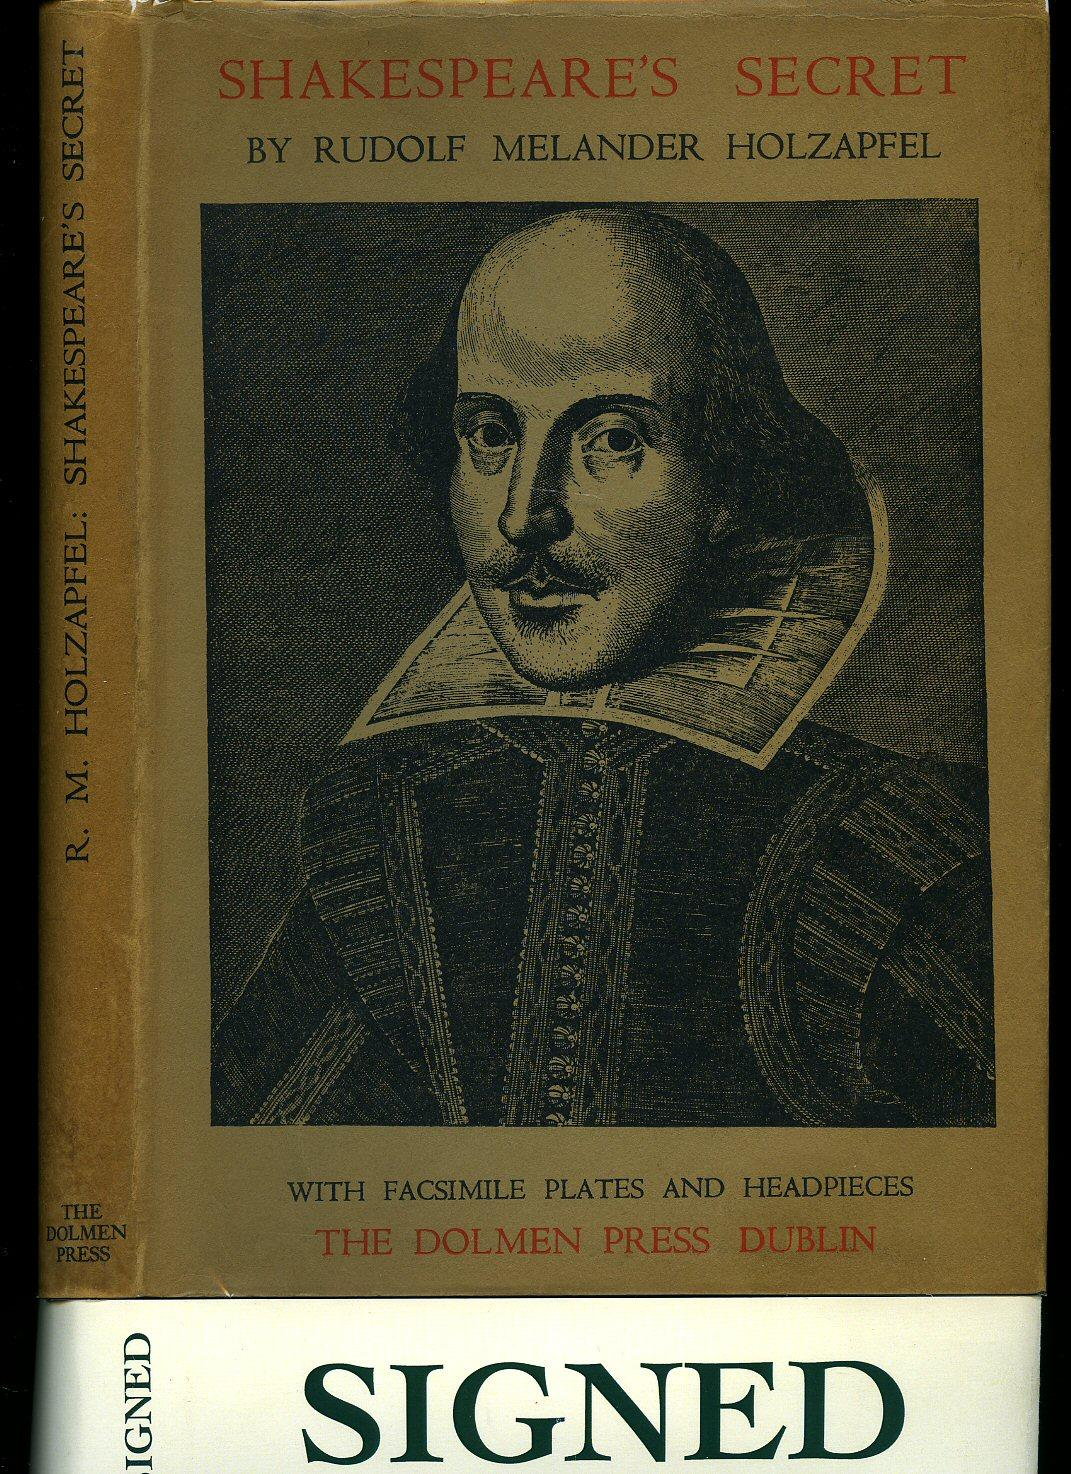 Shakespeare's Secret | A New & Correct Interpretation Of Shakespeare's Sonnets, Which Are Now For The First Time Fully Explained, With A Word For Wor